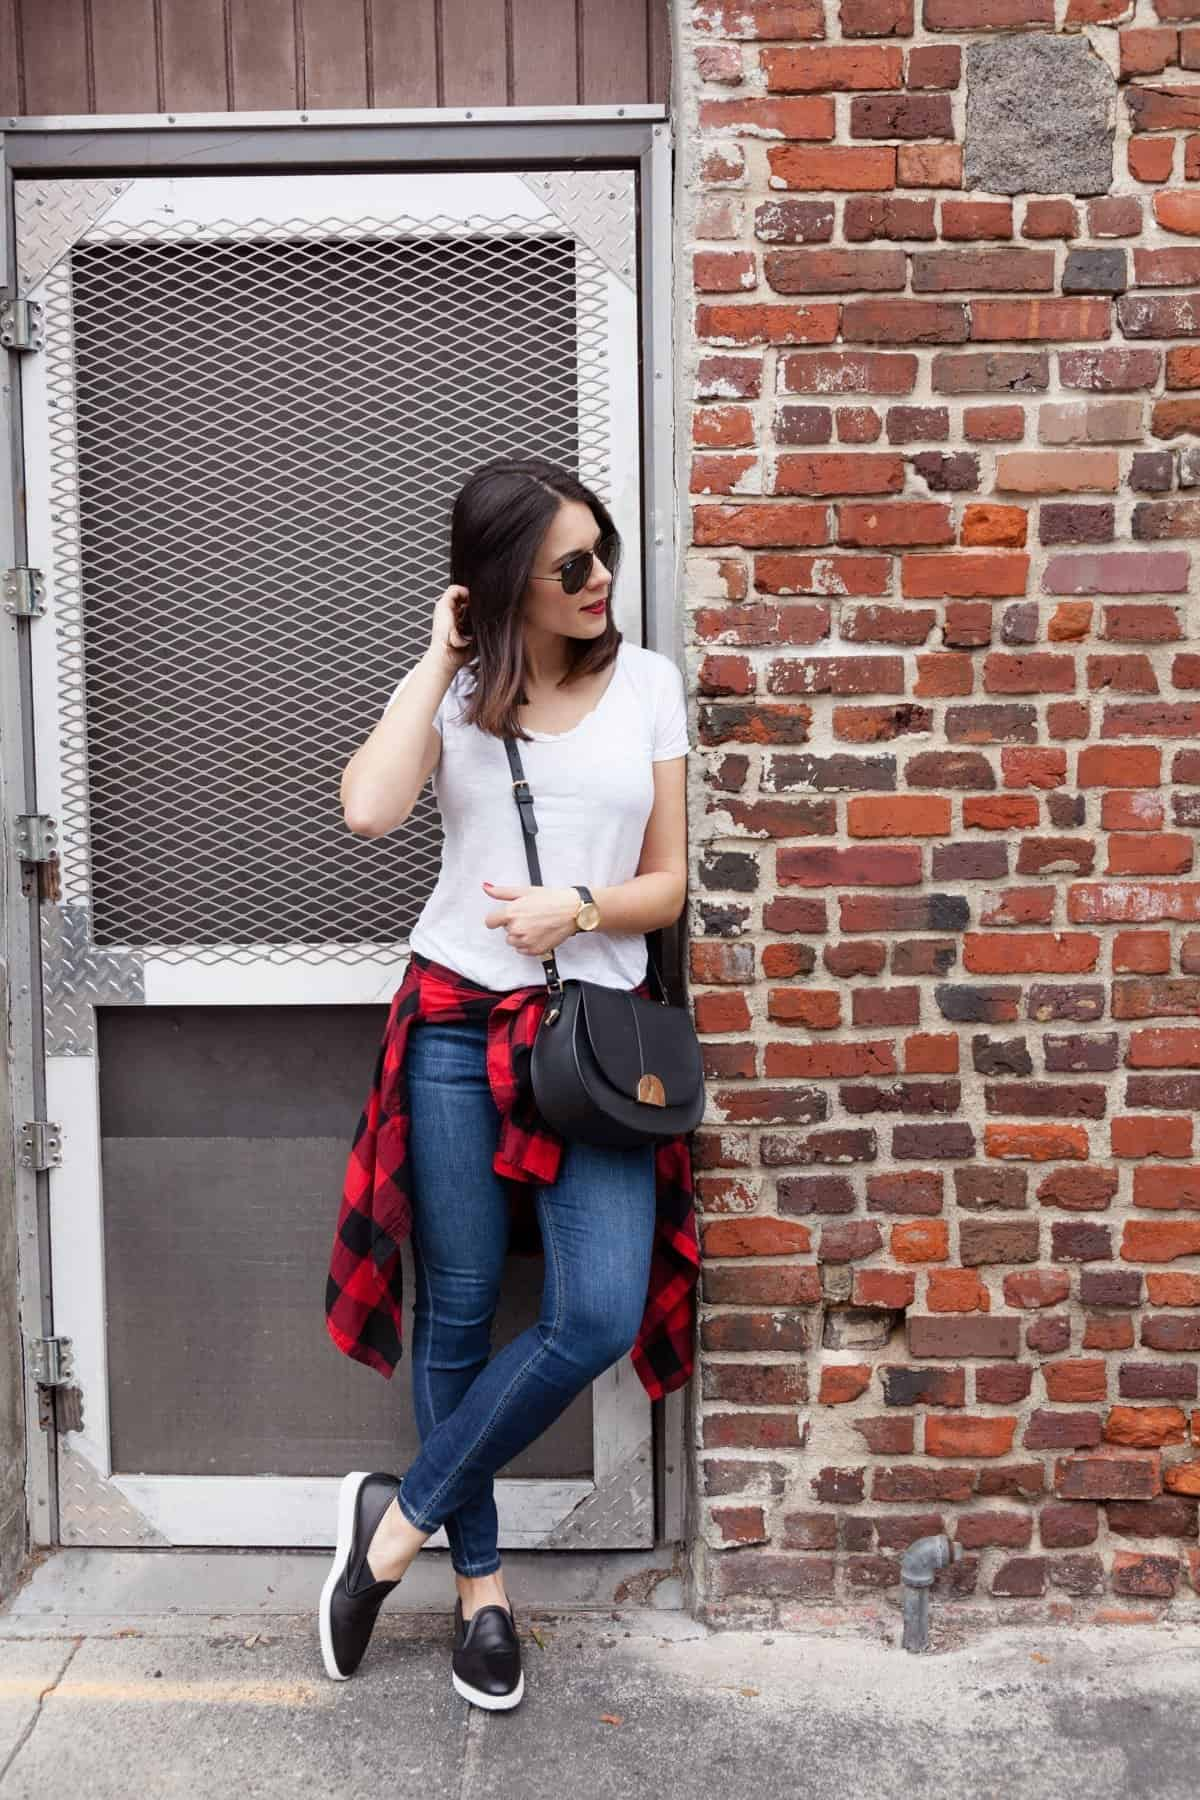 buffalo plaid outfit ideas  - @mystylevita